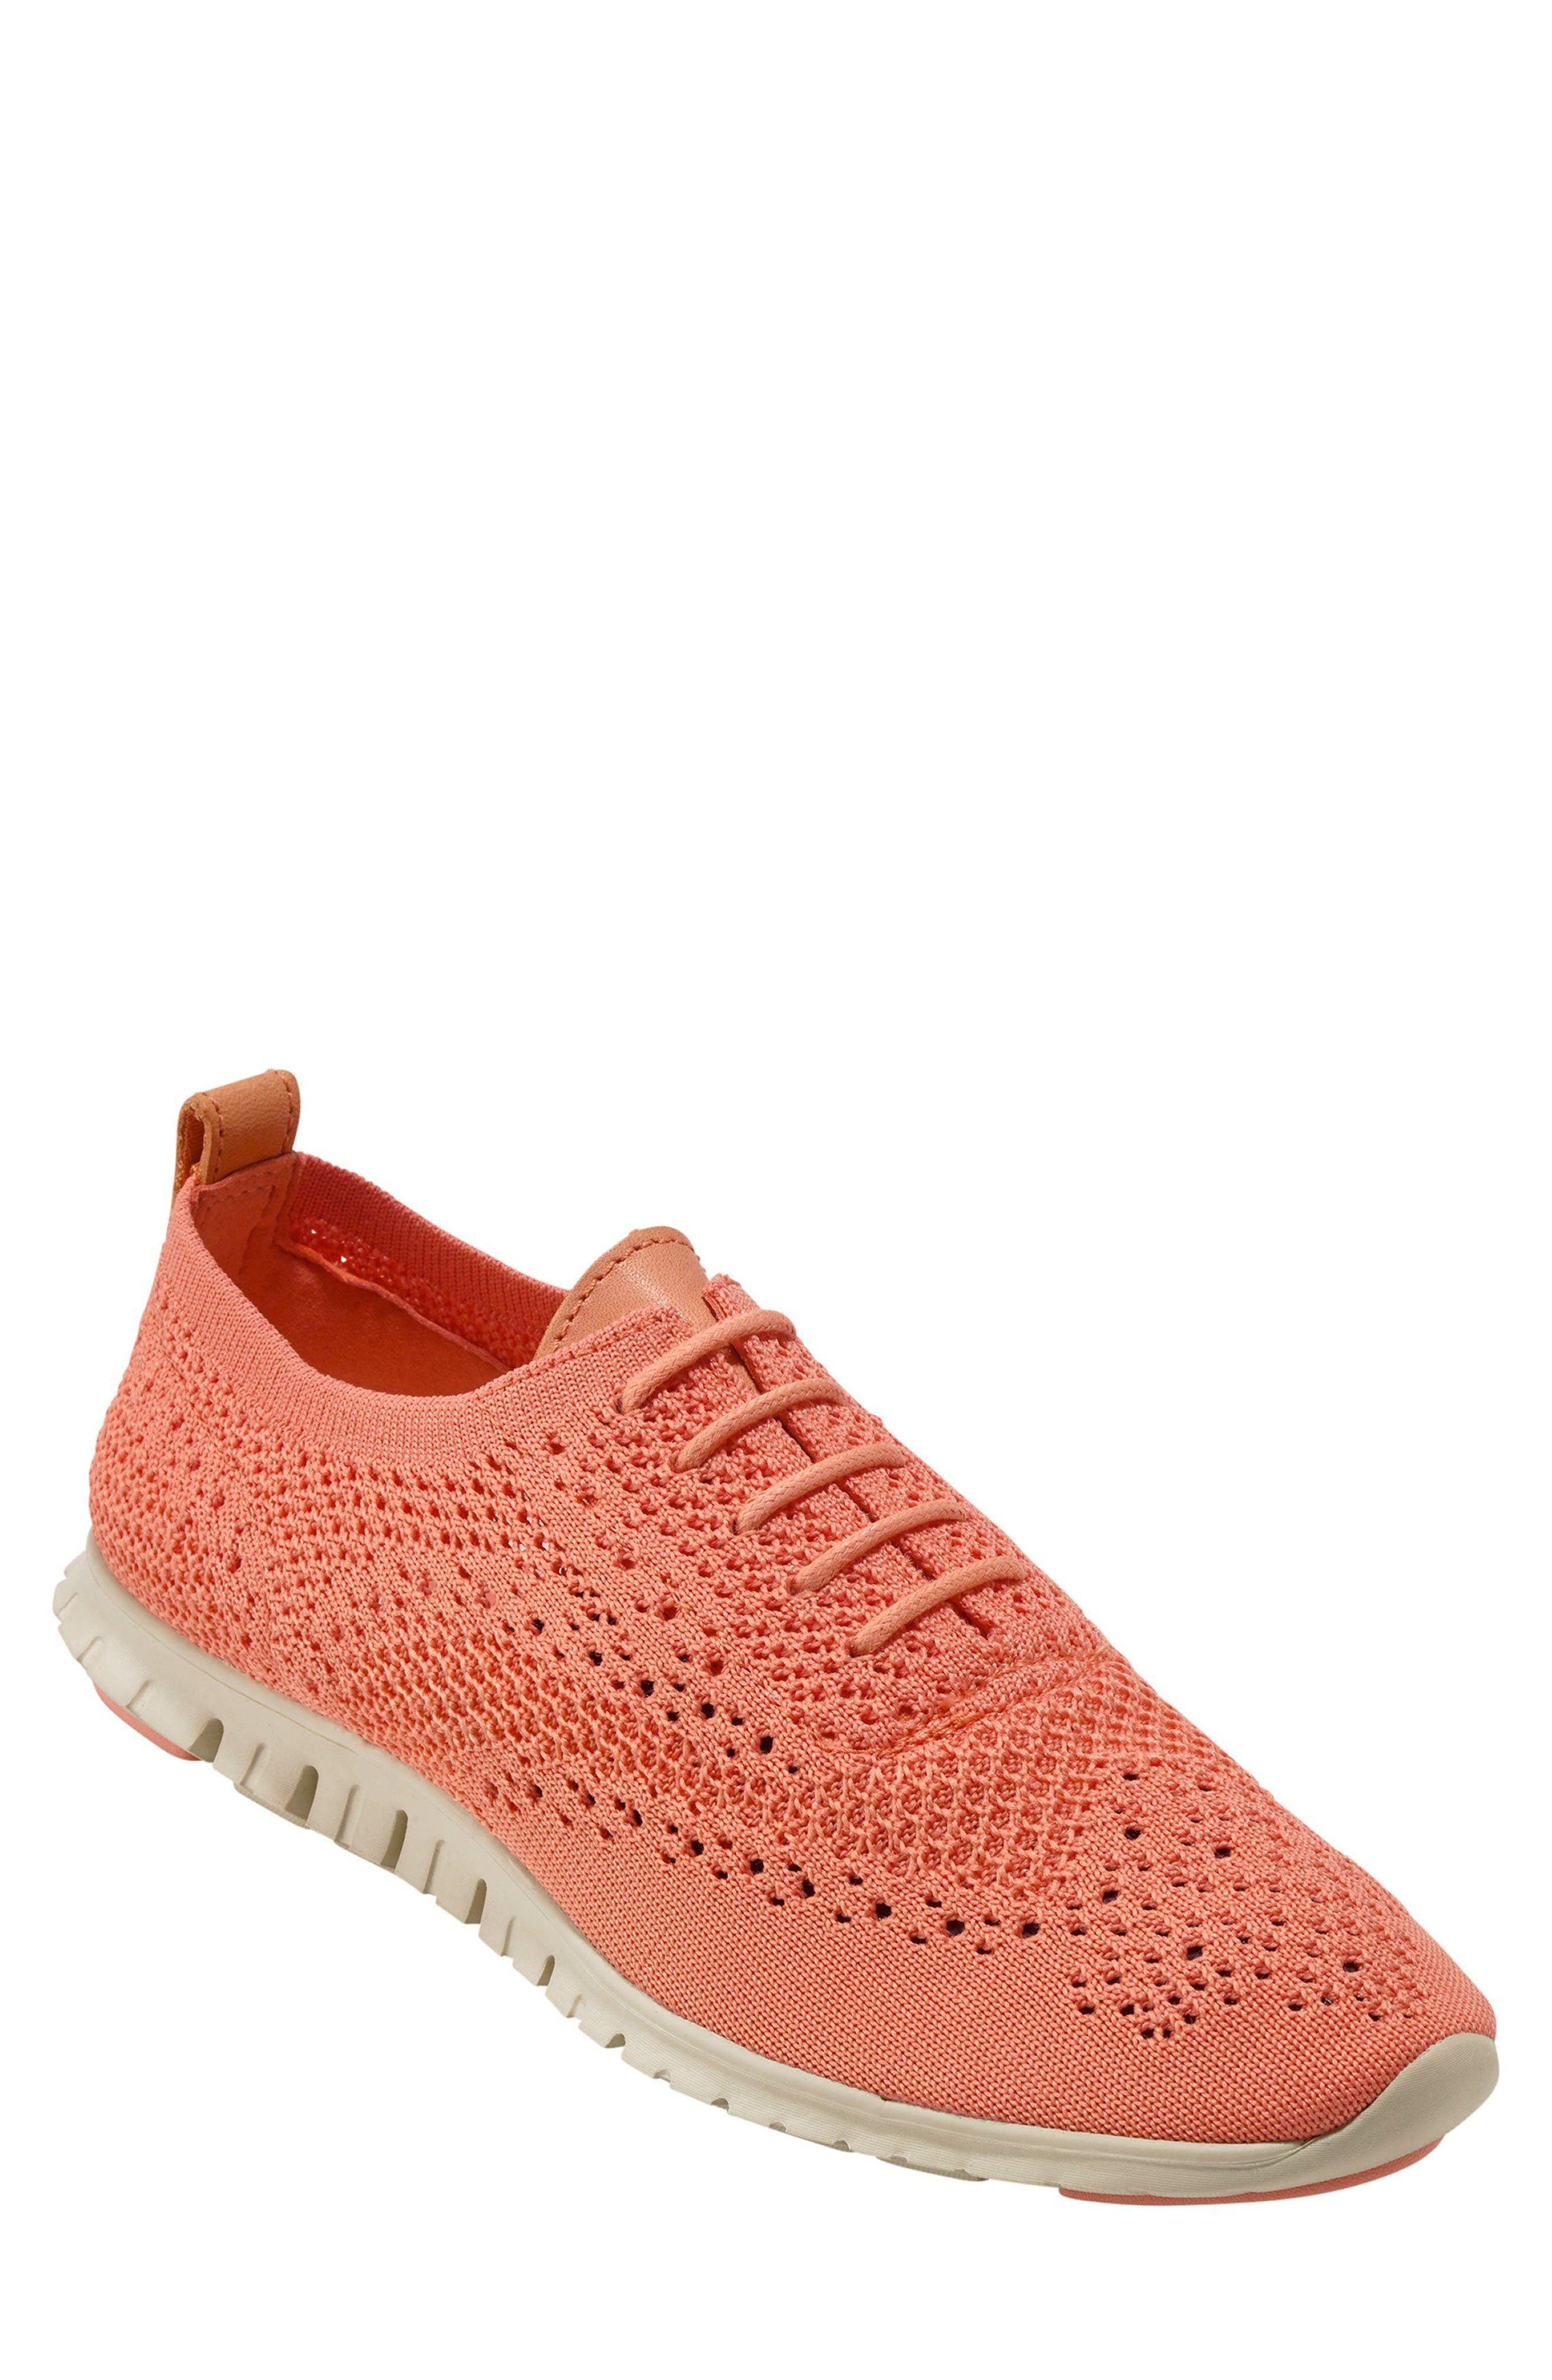 Alternate Image 1 Selected - Cole Haan ZERØGRAND Stitchlite Wingtop Oxford (Women)